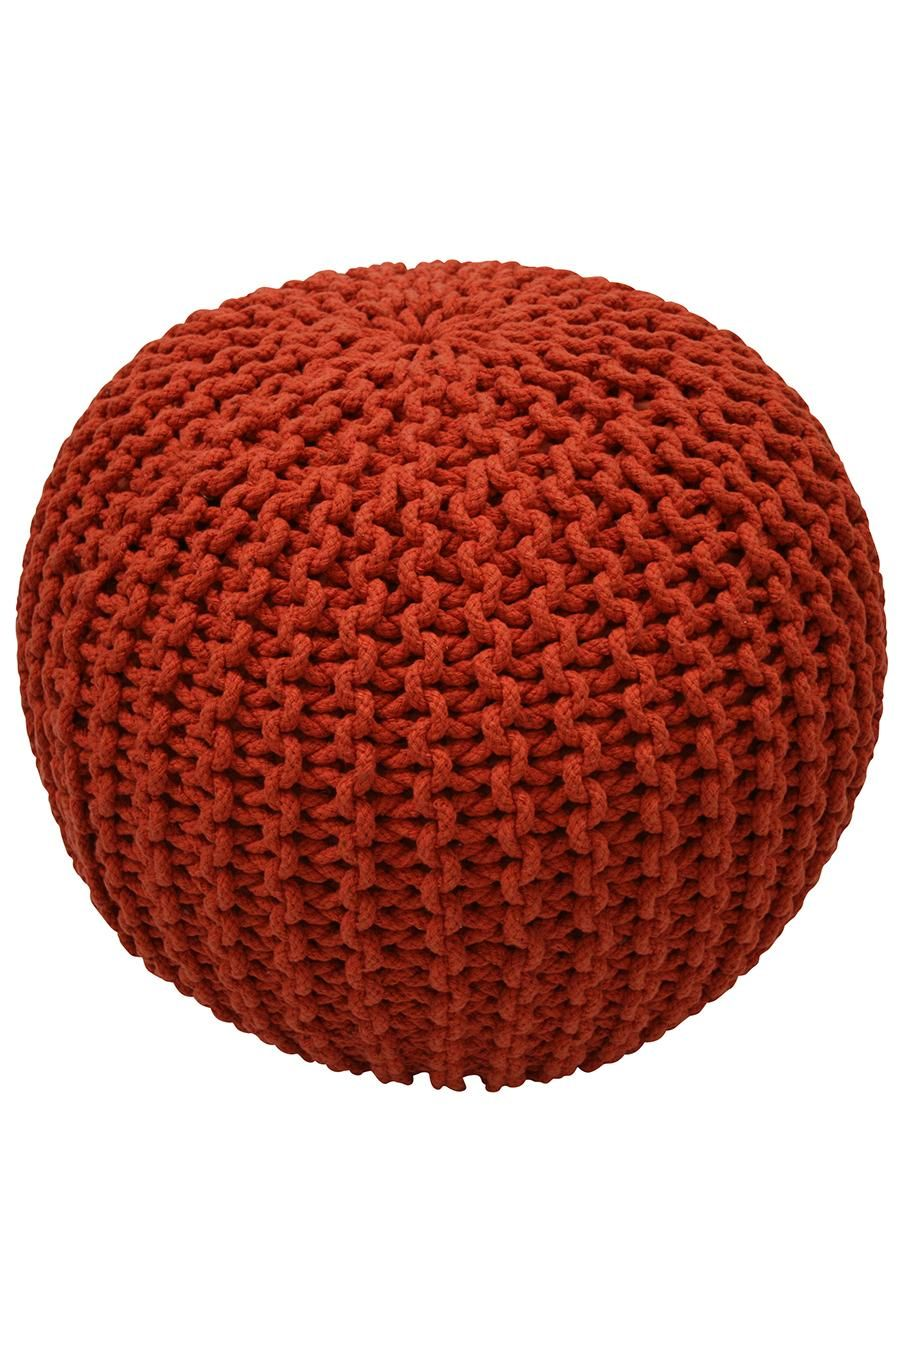 Orange Knitted Pouf To Sit On